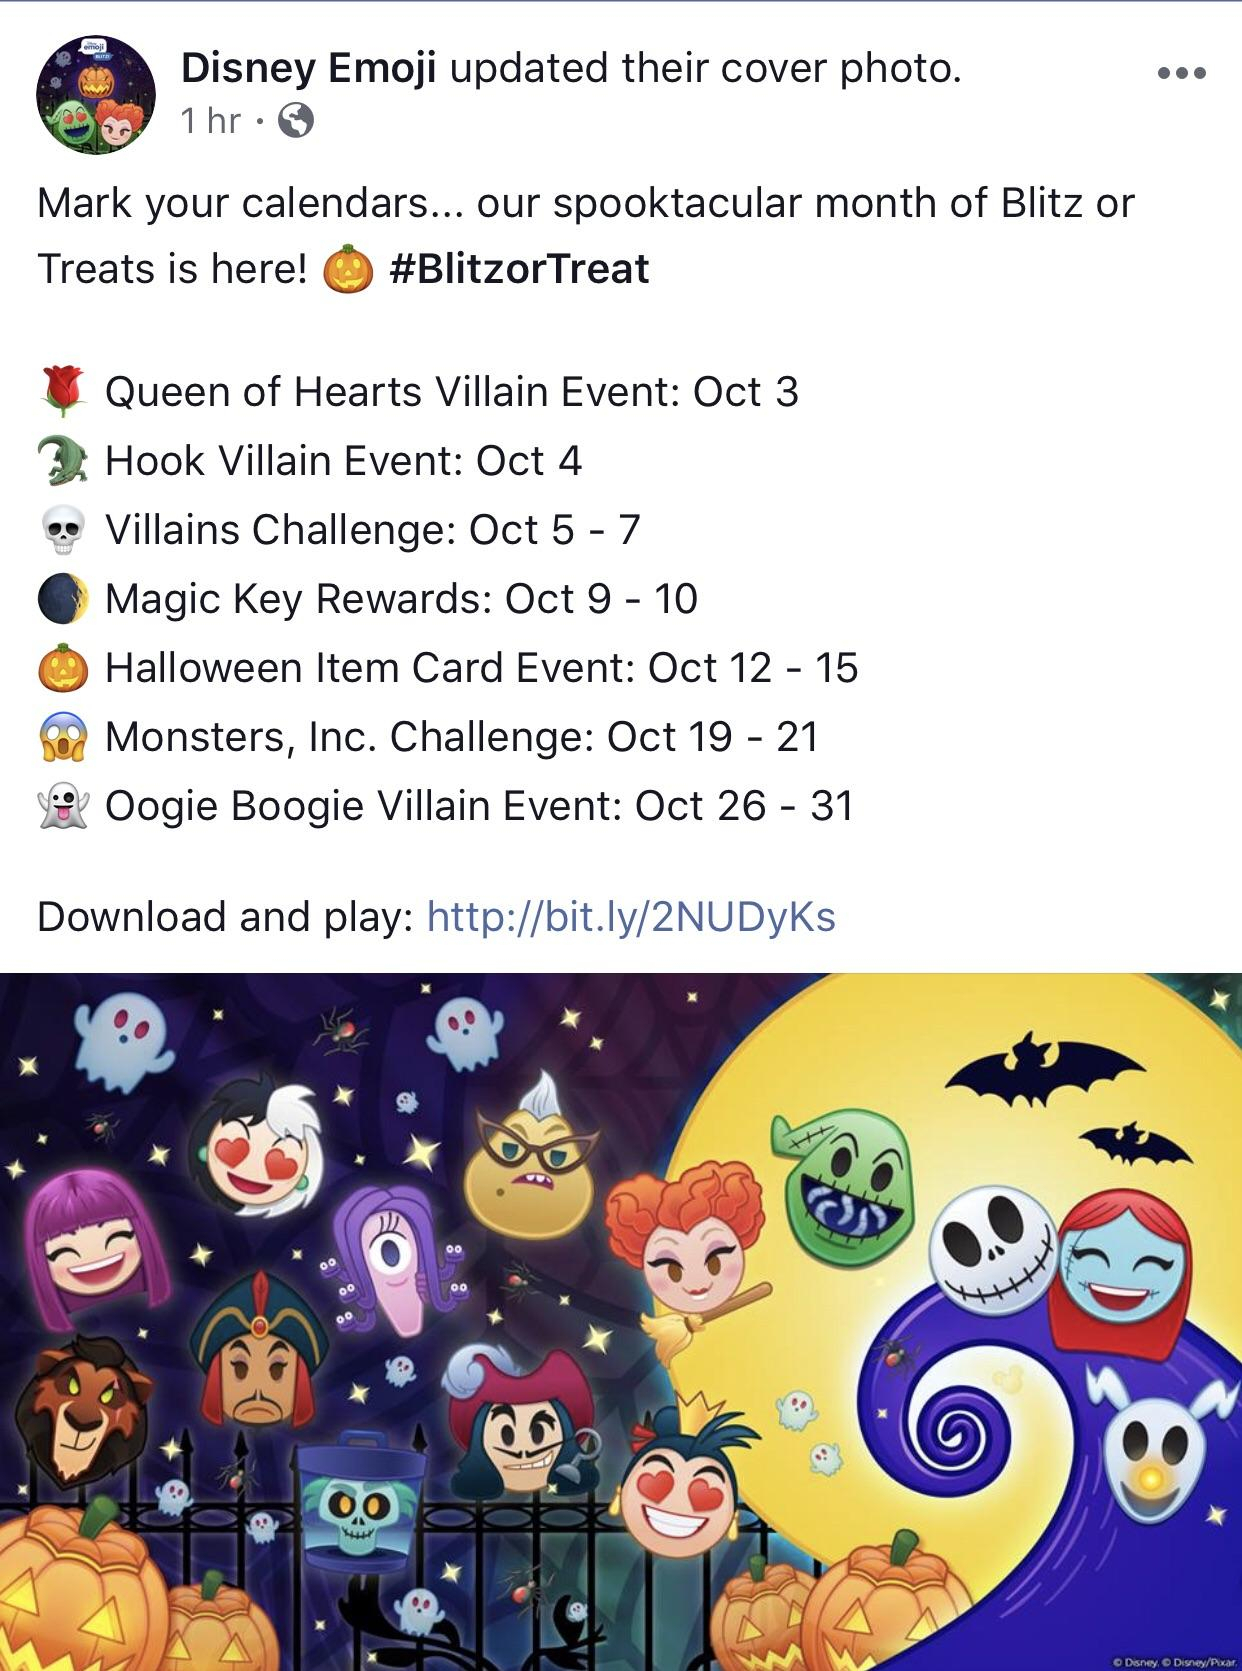 So Glad They're Giving Us The Rundown Every Month pertaining to Emoji Blitz Calendar 2020